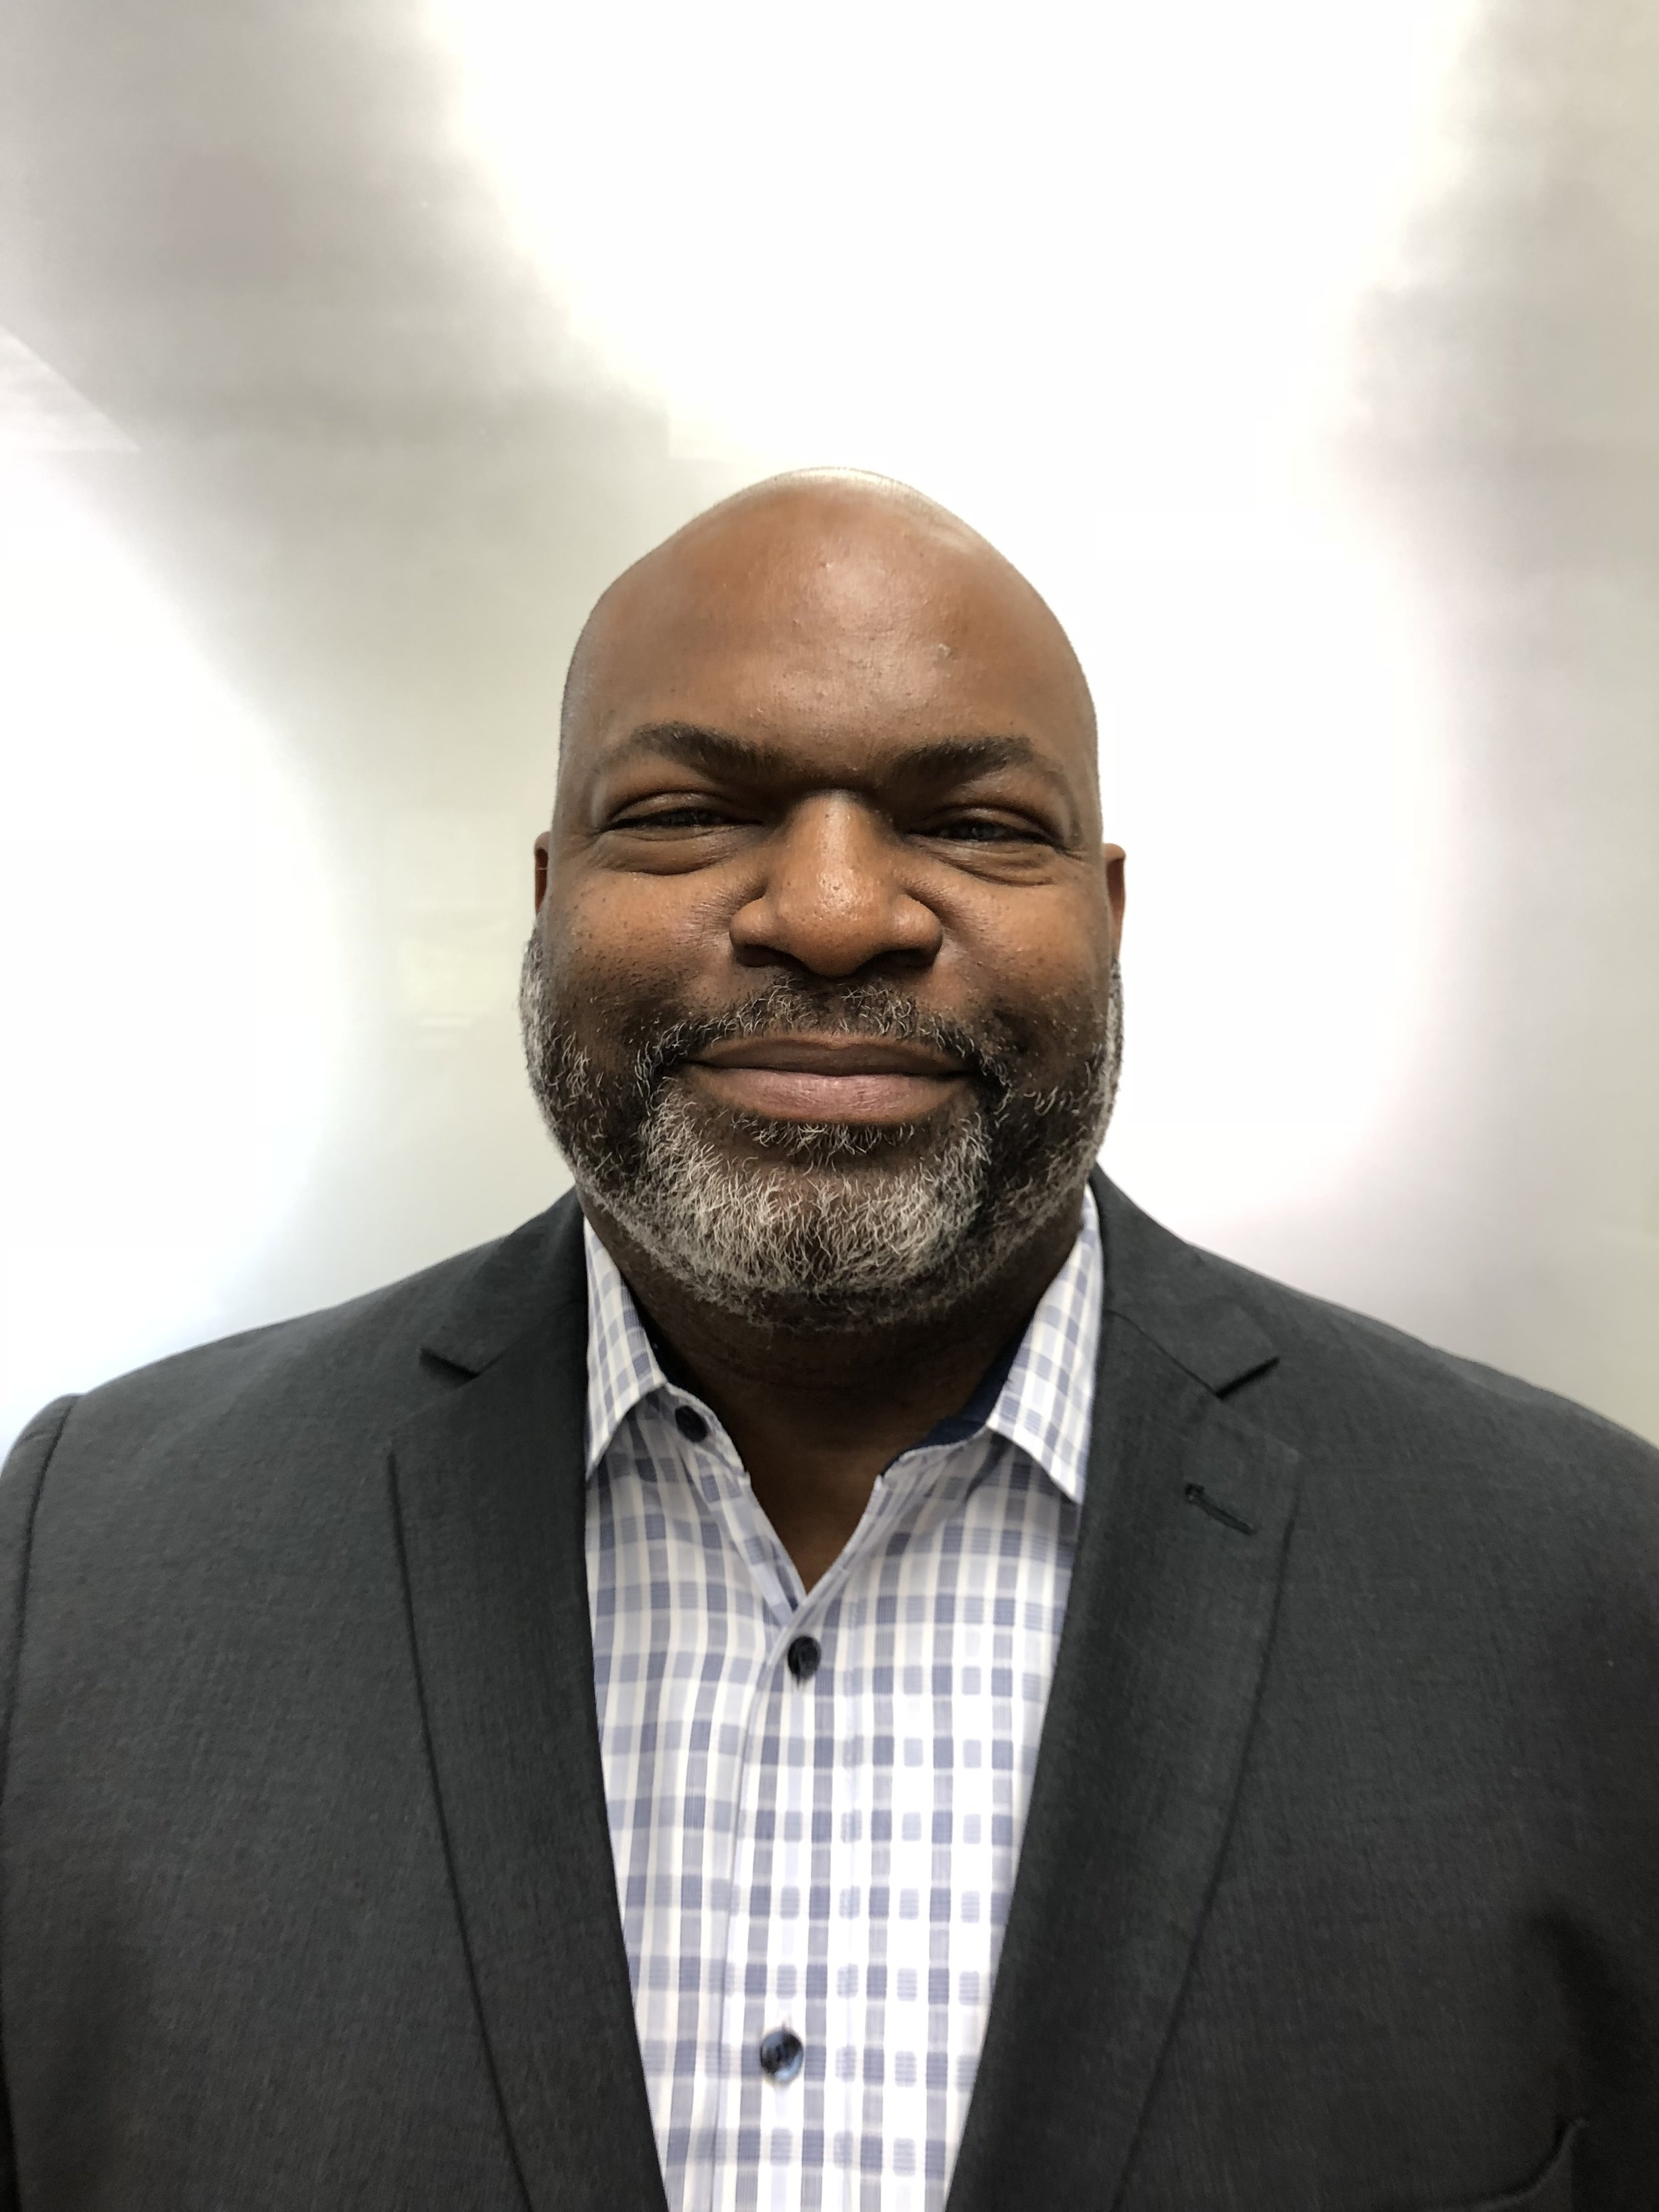 Ken Ward   Associate, Aflac  Hobbies: Coaching wrestling & Fishing  Hoping to gain from coworking: Ability to assist others & Networking opportunities  Can help fellow coworkers by: Being a Resource for information & connections   Linkedin